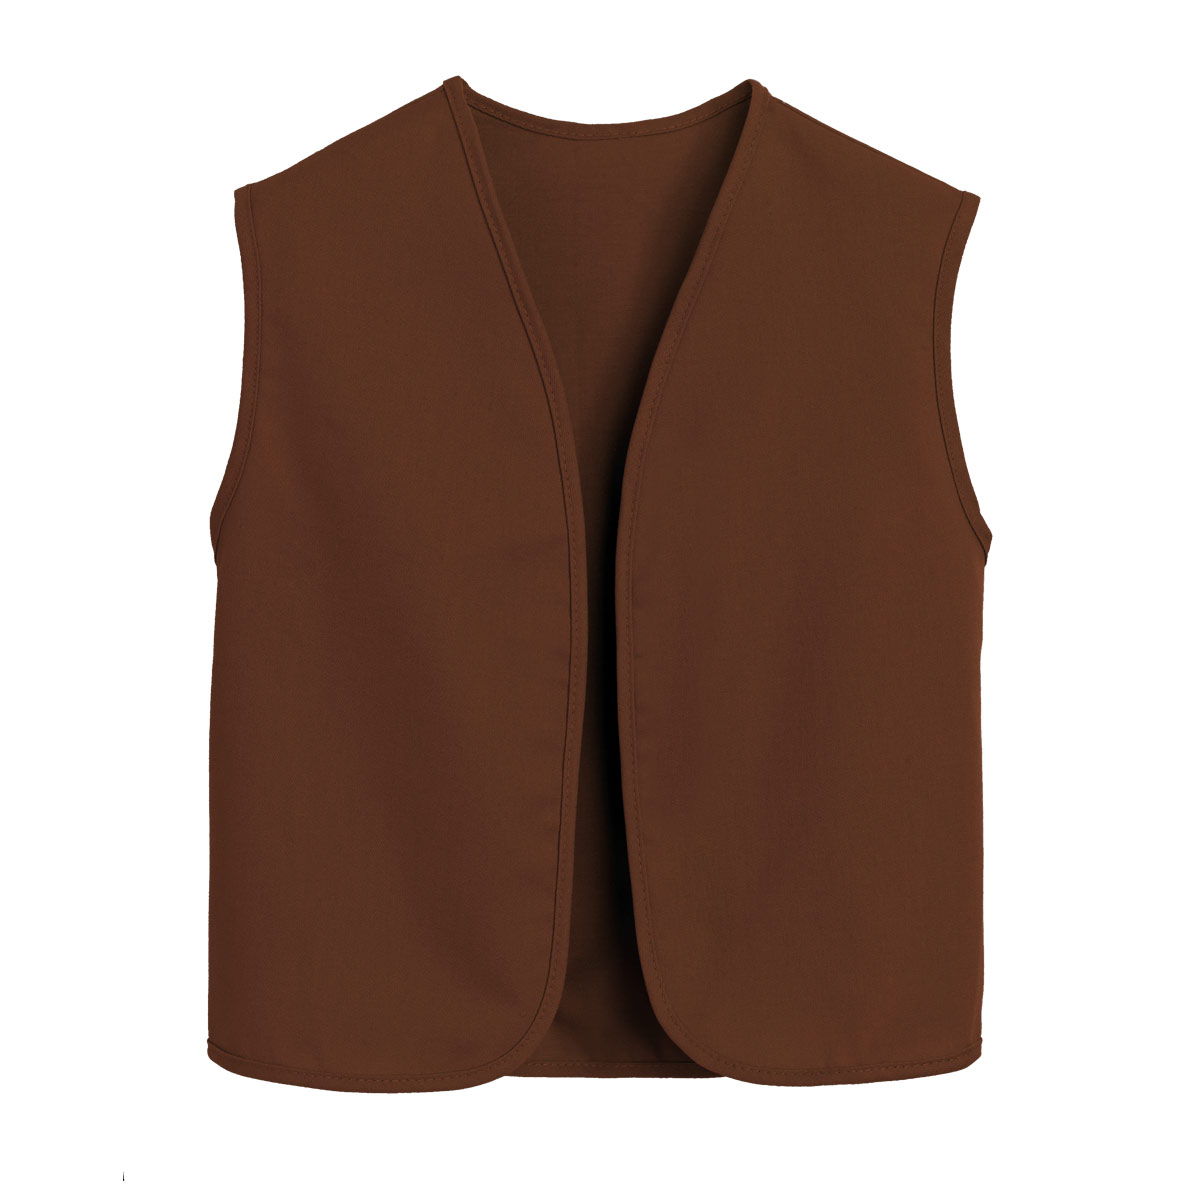 What a brownie vest looks like using whole life insurance as an investment